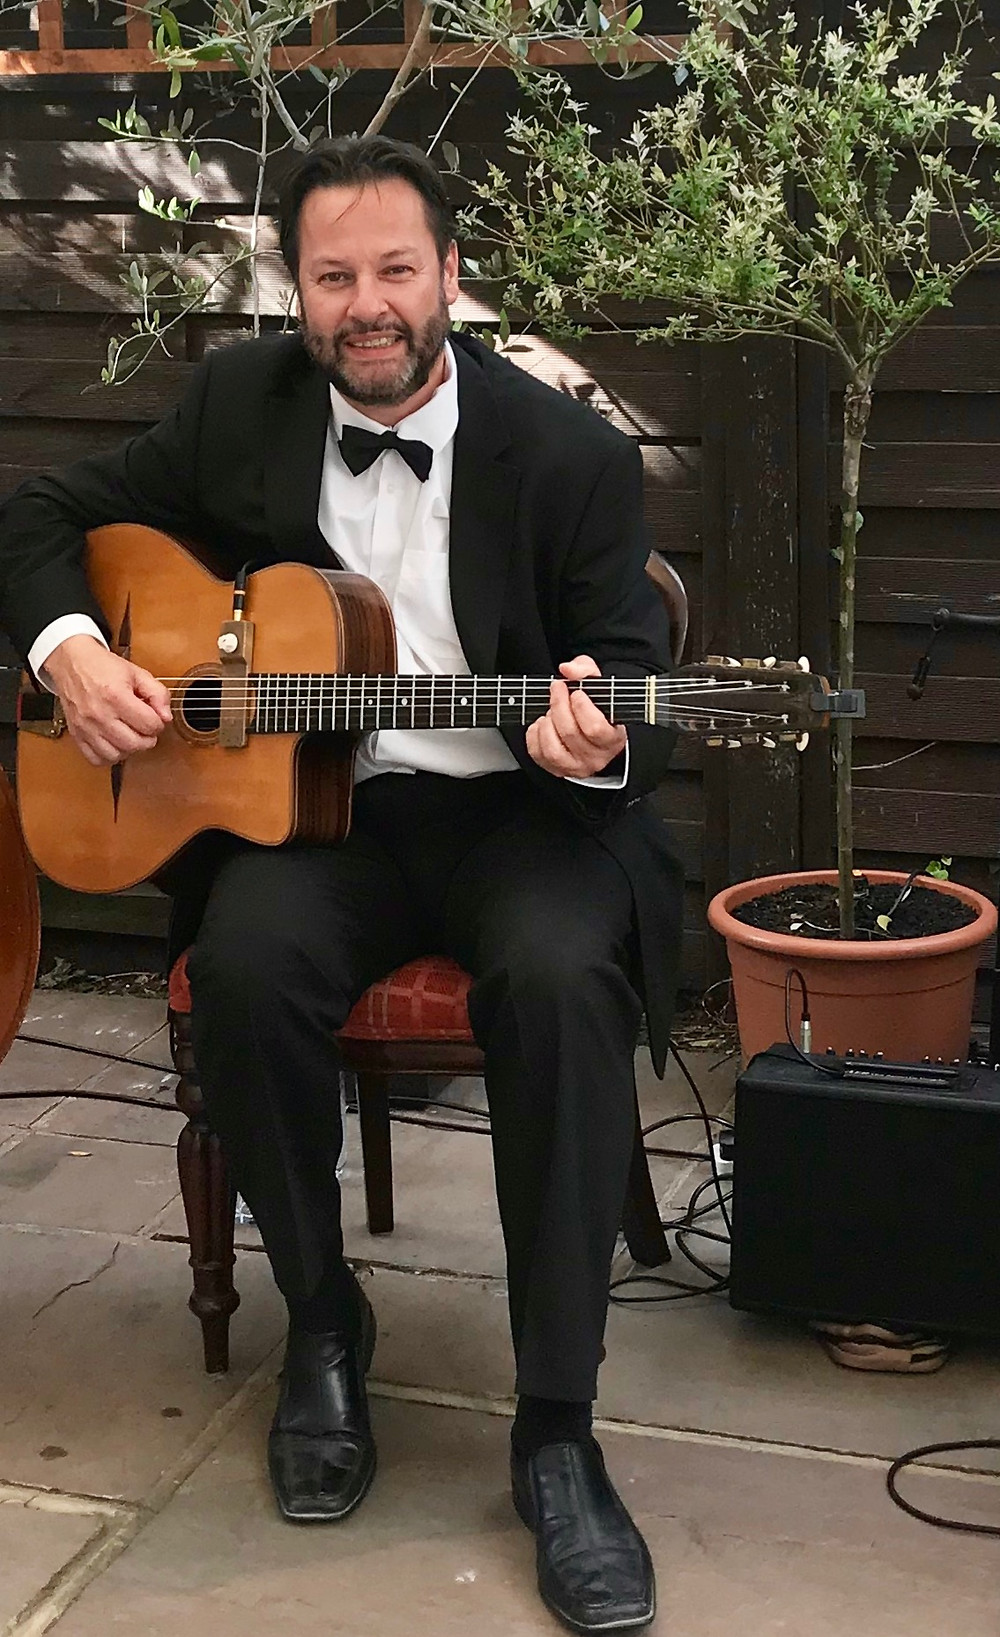 Jonny Hepbir Solo Gypsy Jazz Guitarist Performing For A Corporate Event At Wimbledon